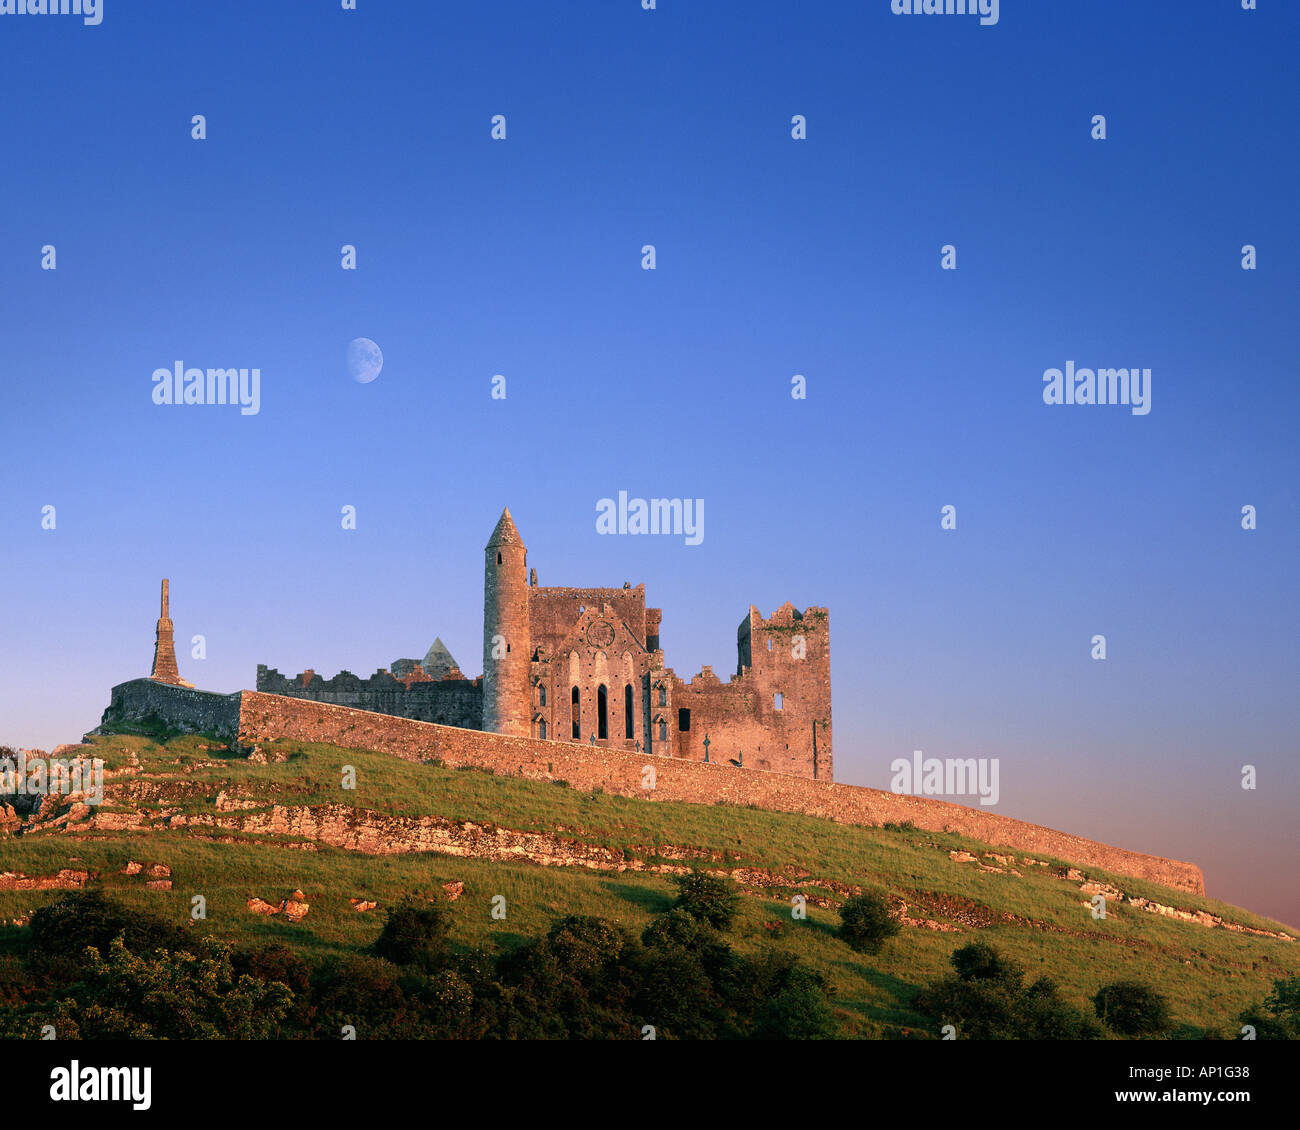 IE - CO. TIPPERARY: Rock of Cashel - Stock Image